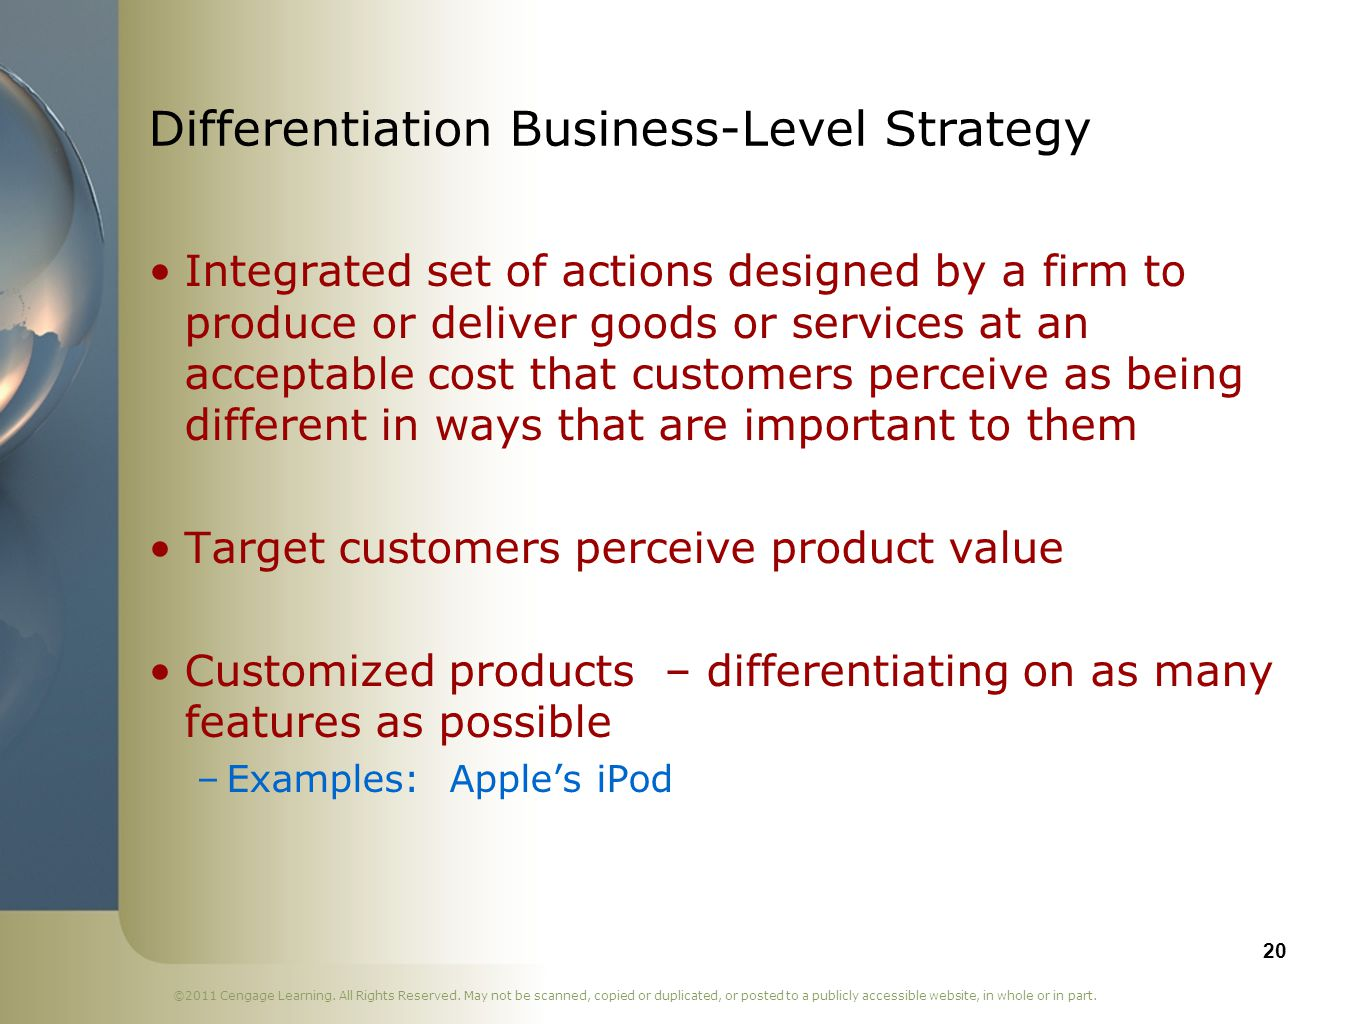 Differentiation Business-Level Strategy